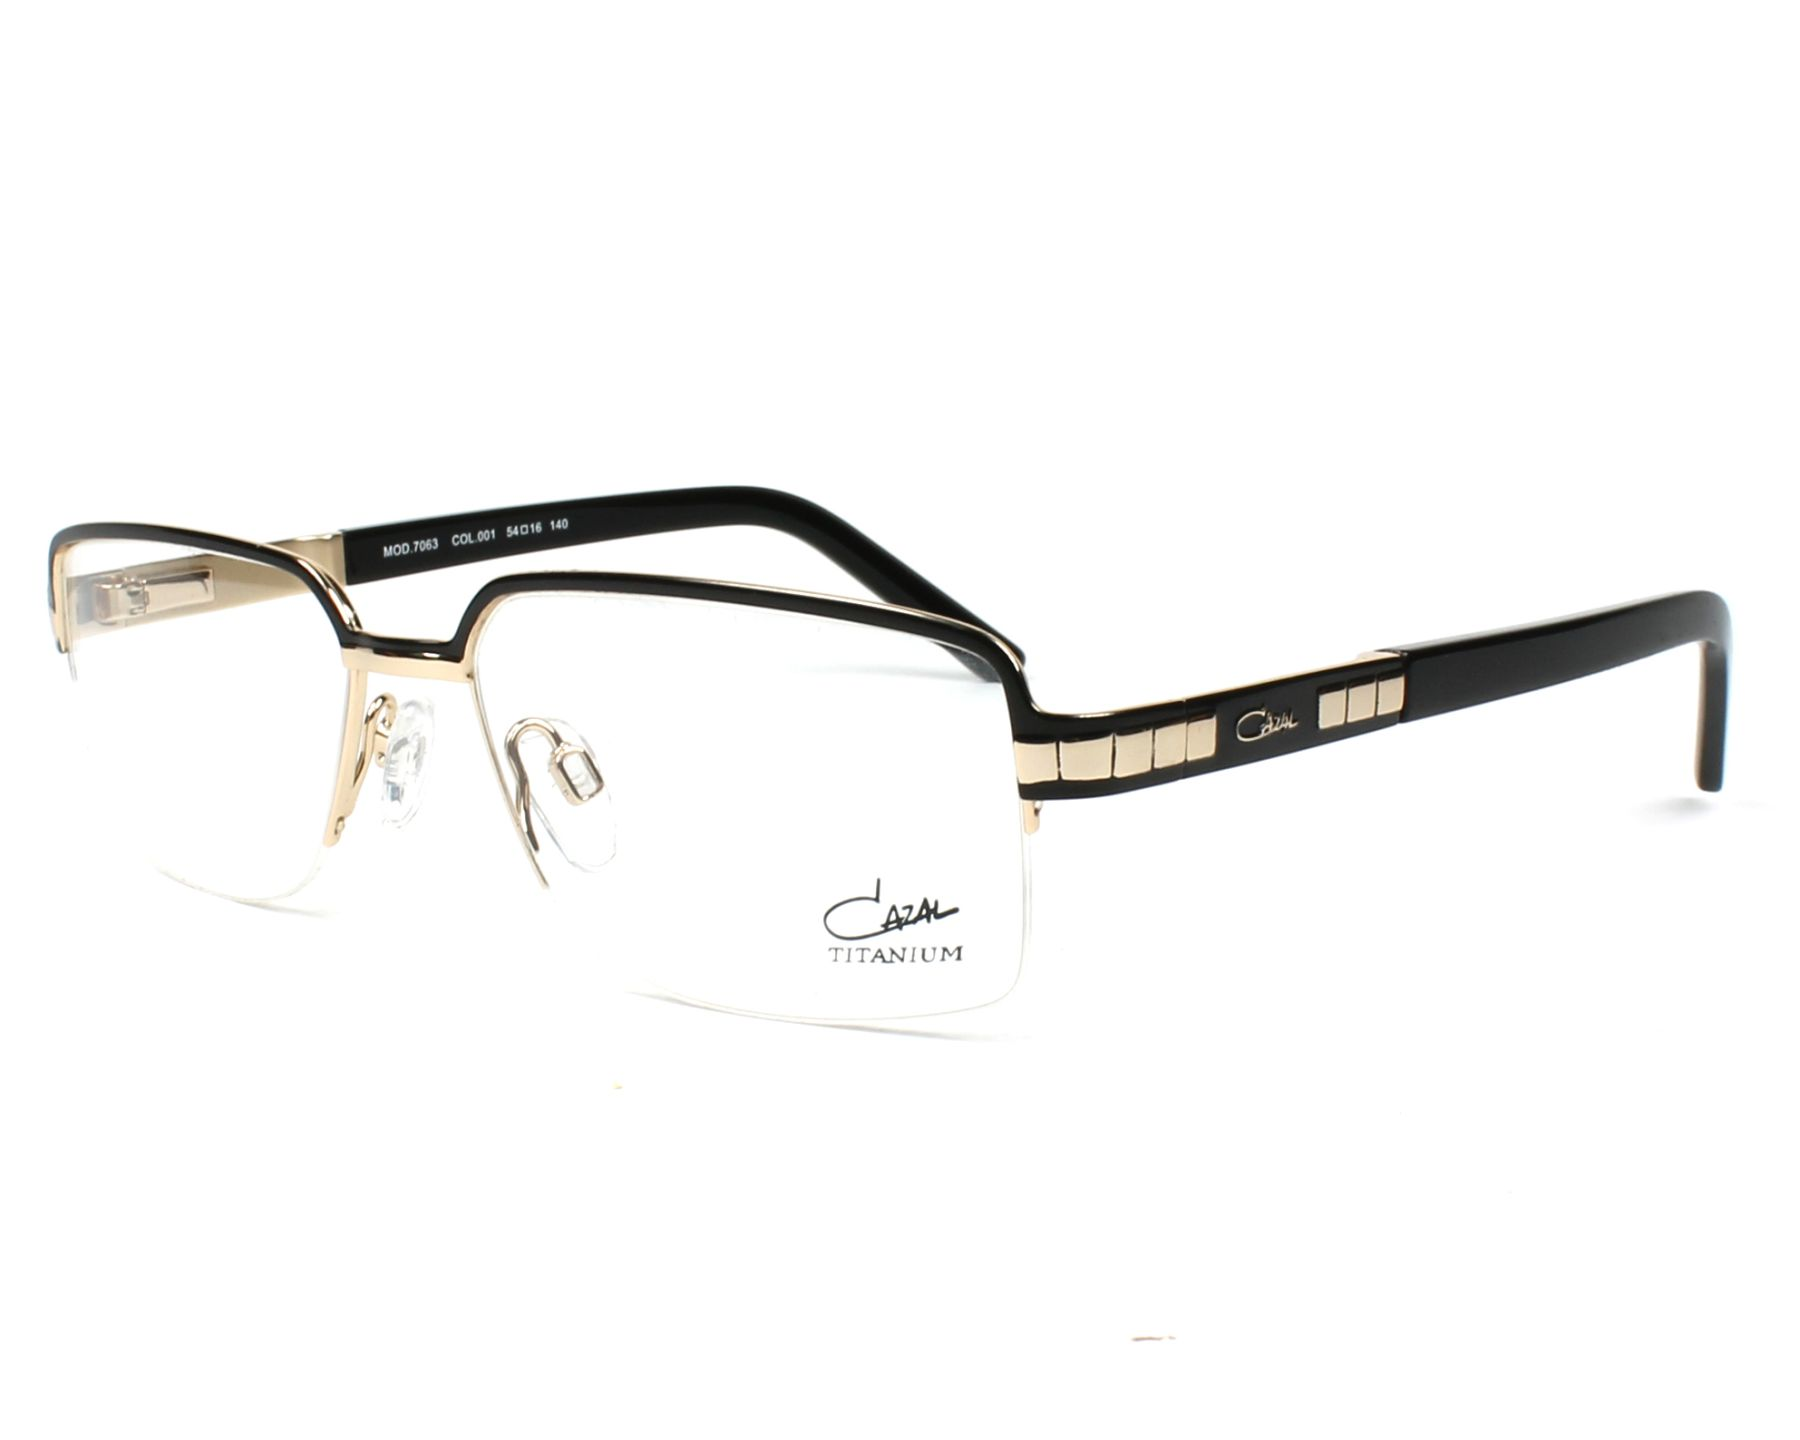 d80cb9d4c8 eyeglasses Cazal 7063 001 - Black Gold profile view